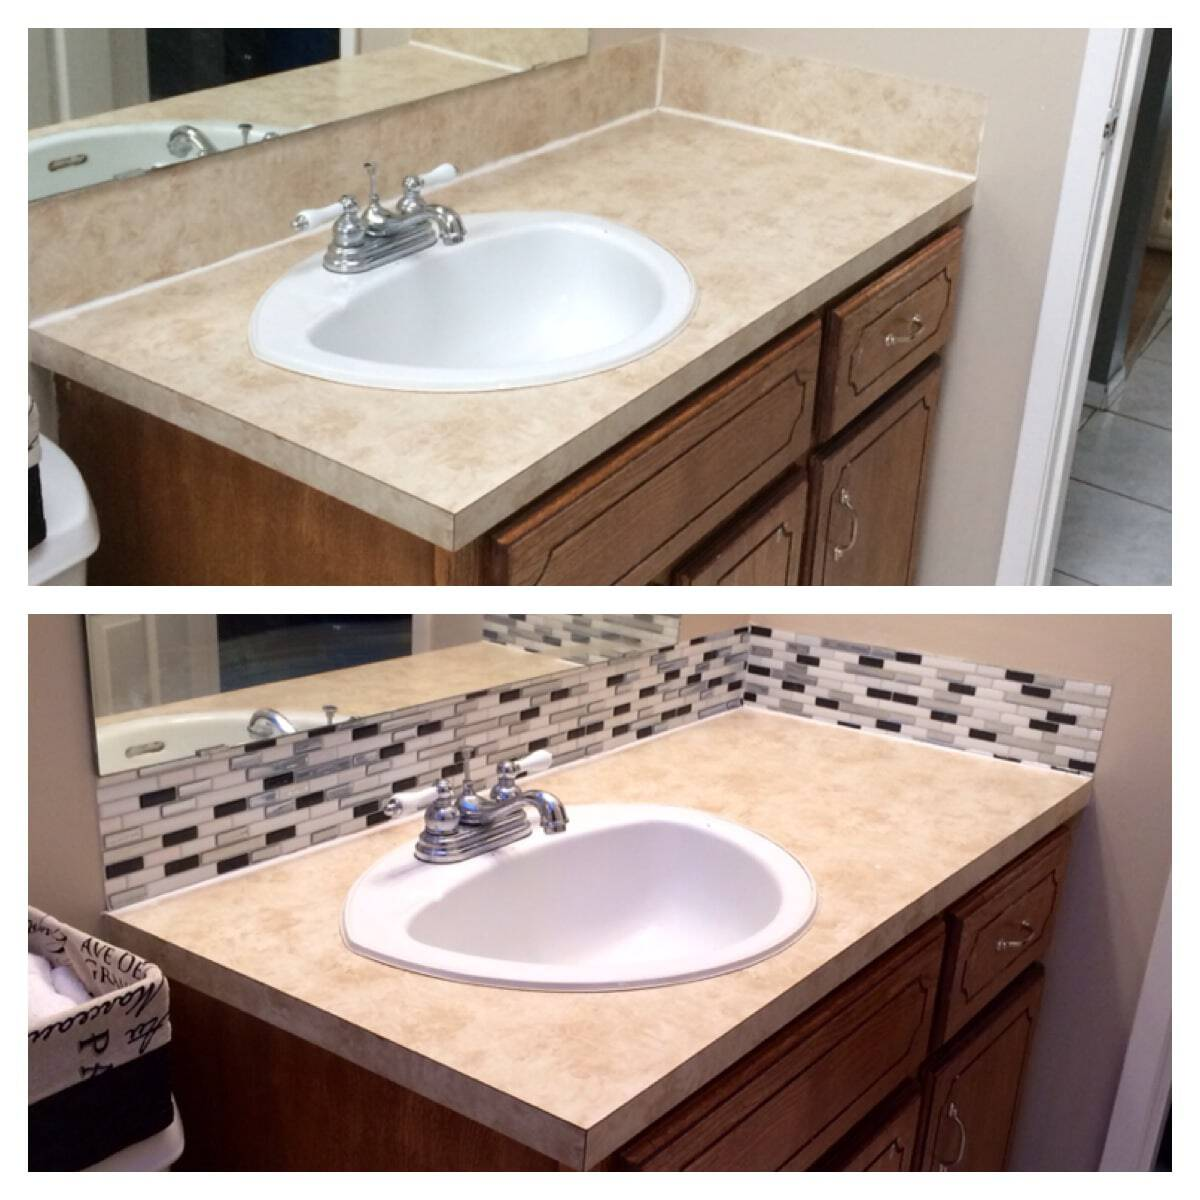 Smart Tiles Before AFter. Smart Tiles Before AFter   The Bewitchin  Kitchen